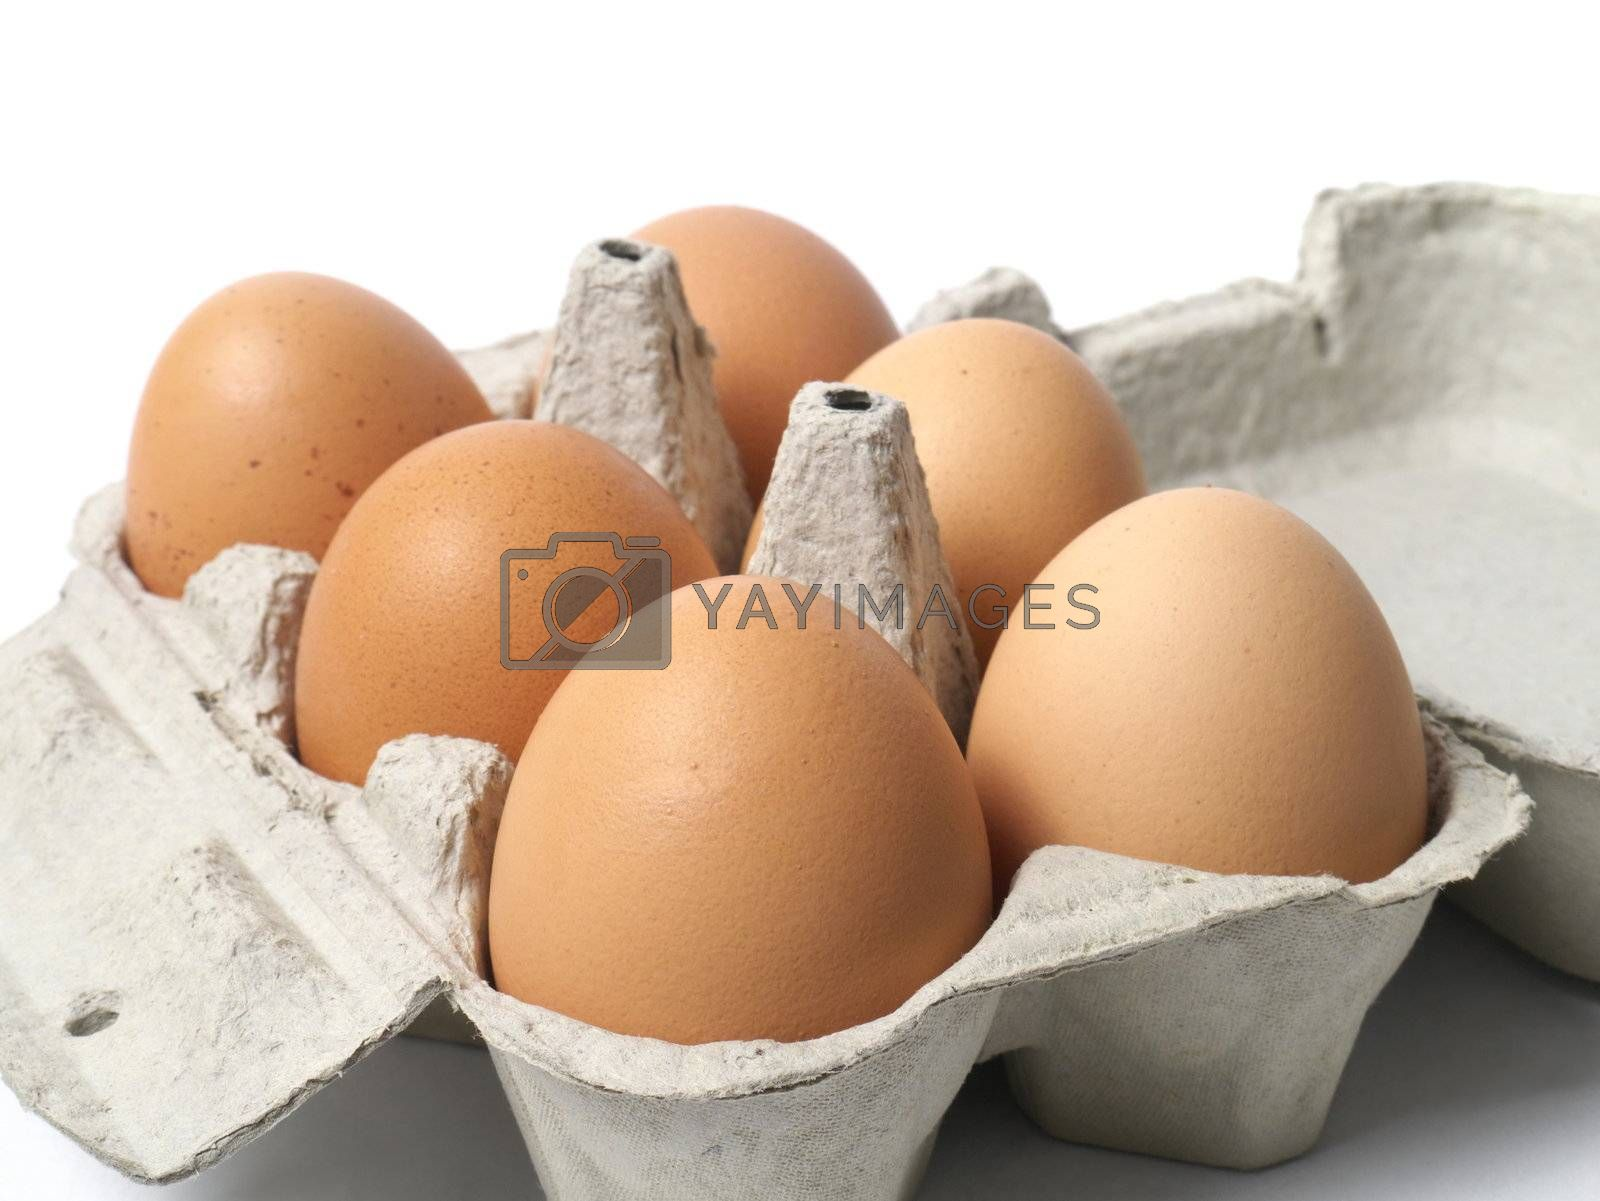 Six eggs in container on white background